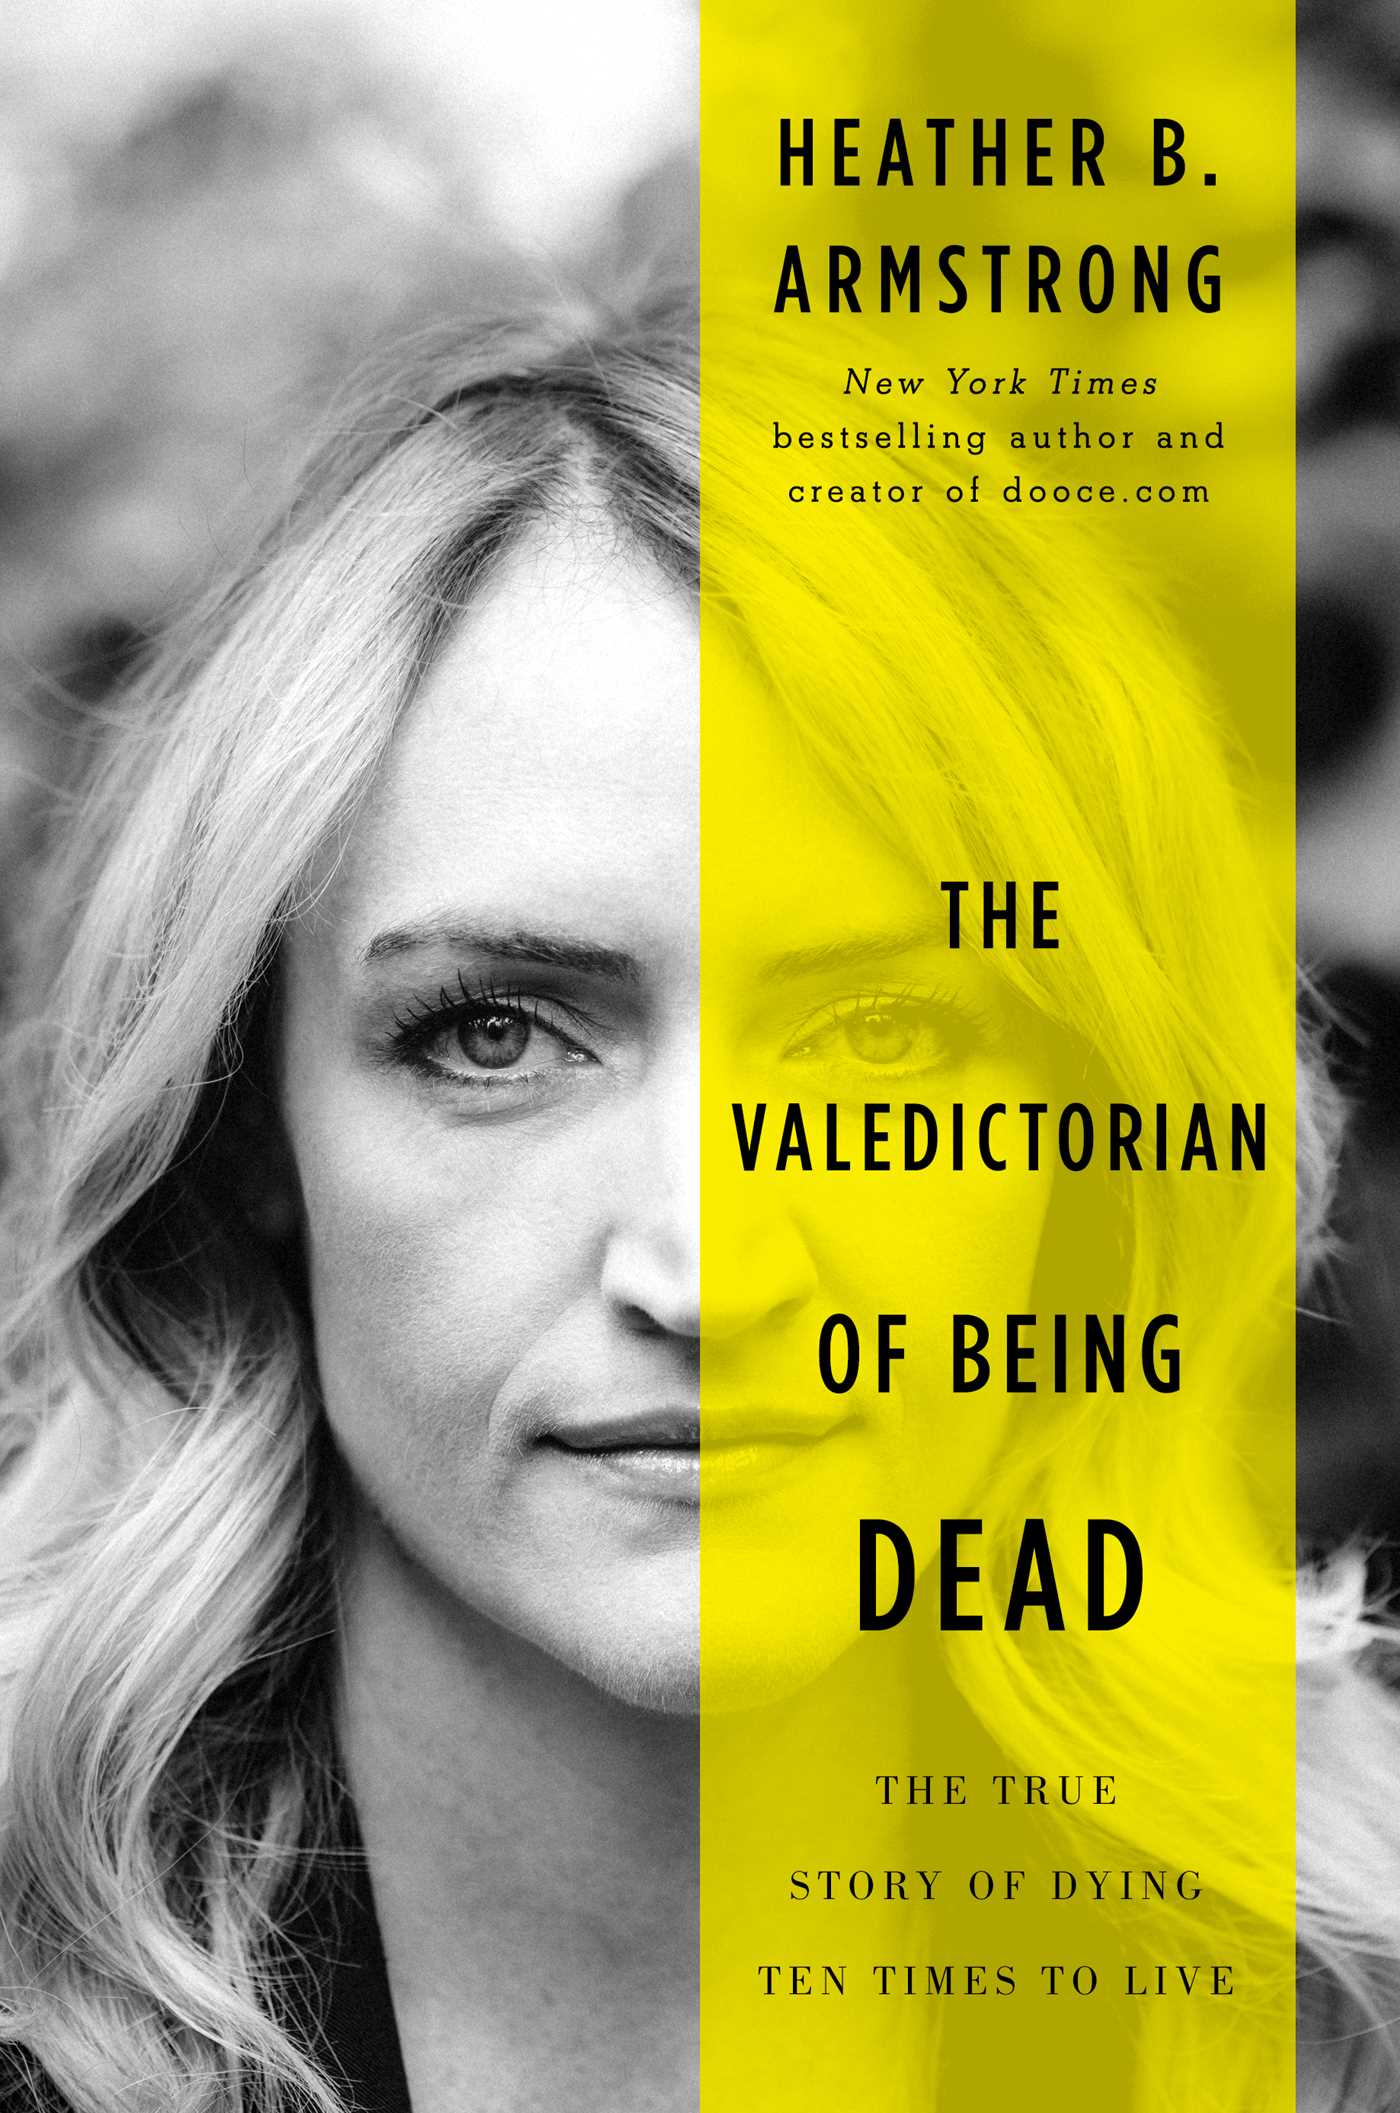 From New York Times bestselling author and blogger Heather B. Armstrong comes an honest and irreverent memoir—reminiscent of the New York Times bestseller Brain on Fire—about her experience as one of only a few people to participate in an experimental treatment for depression involving ten rounds of a chemically induced coma approximating brain death.